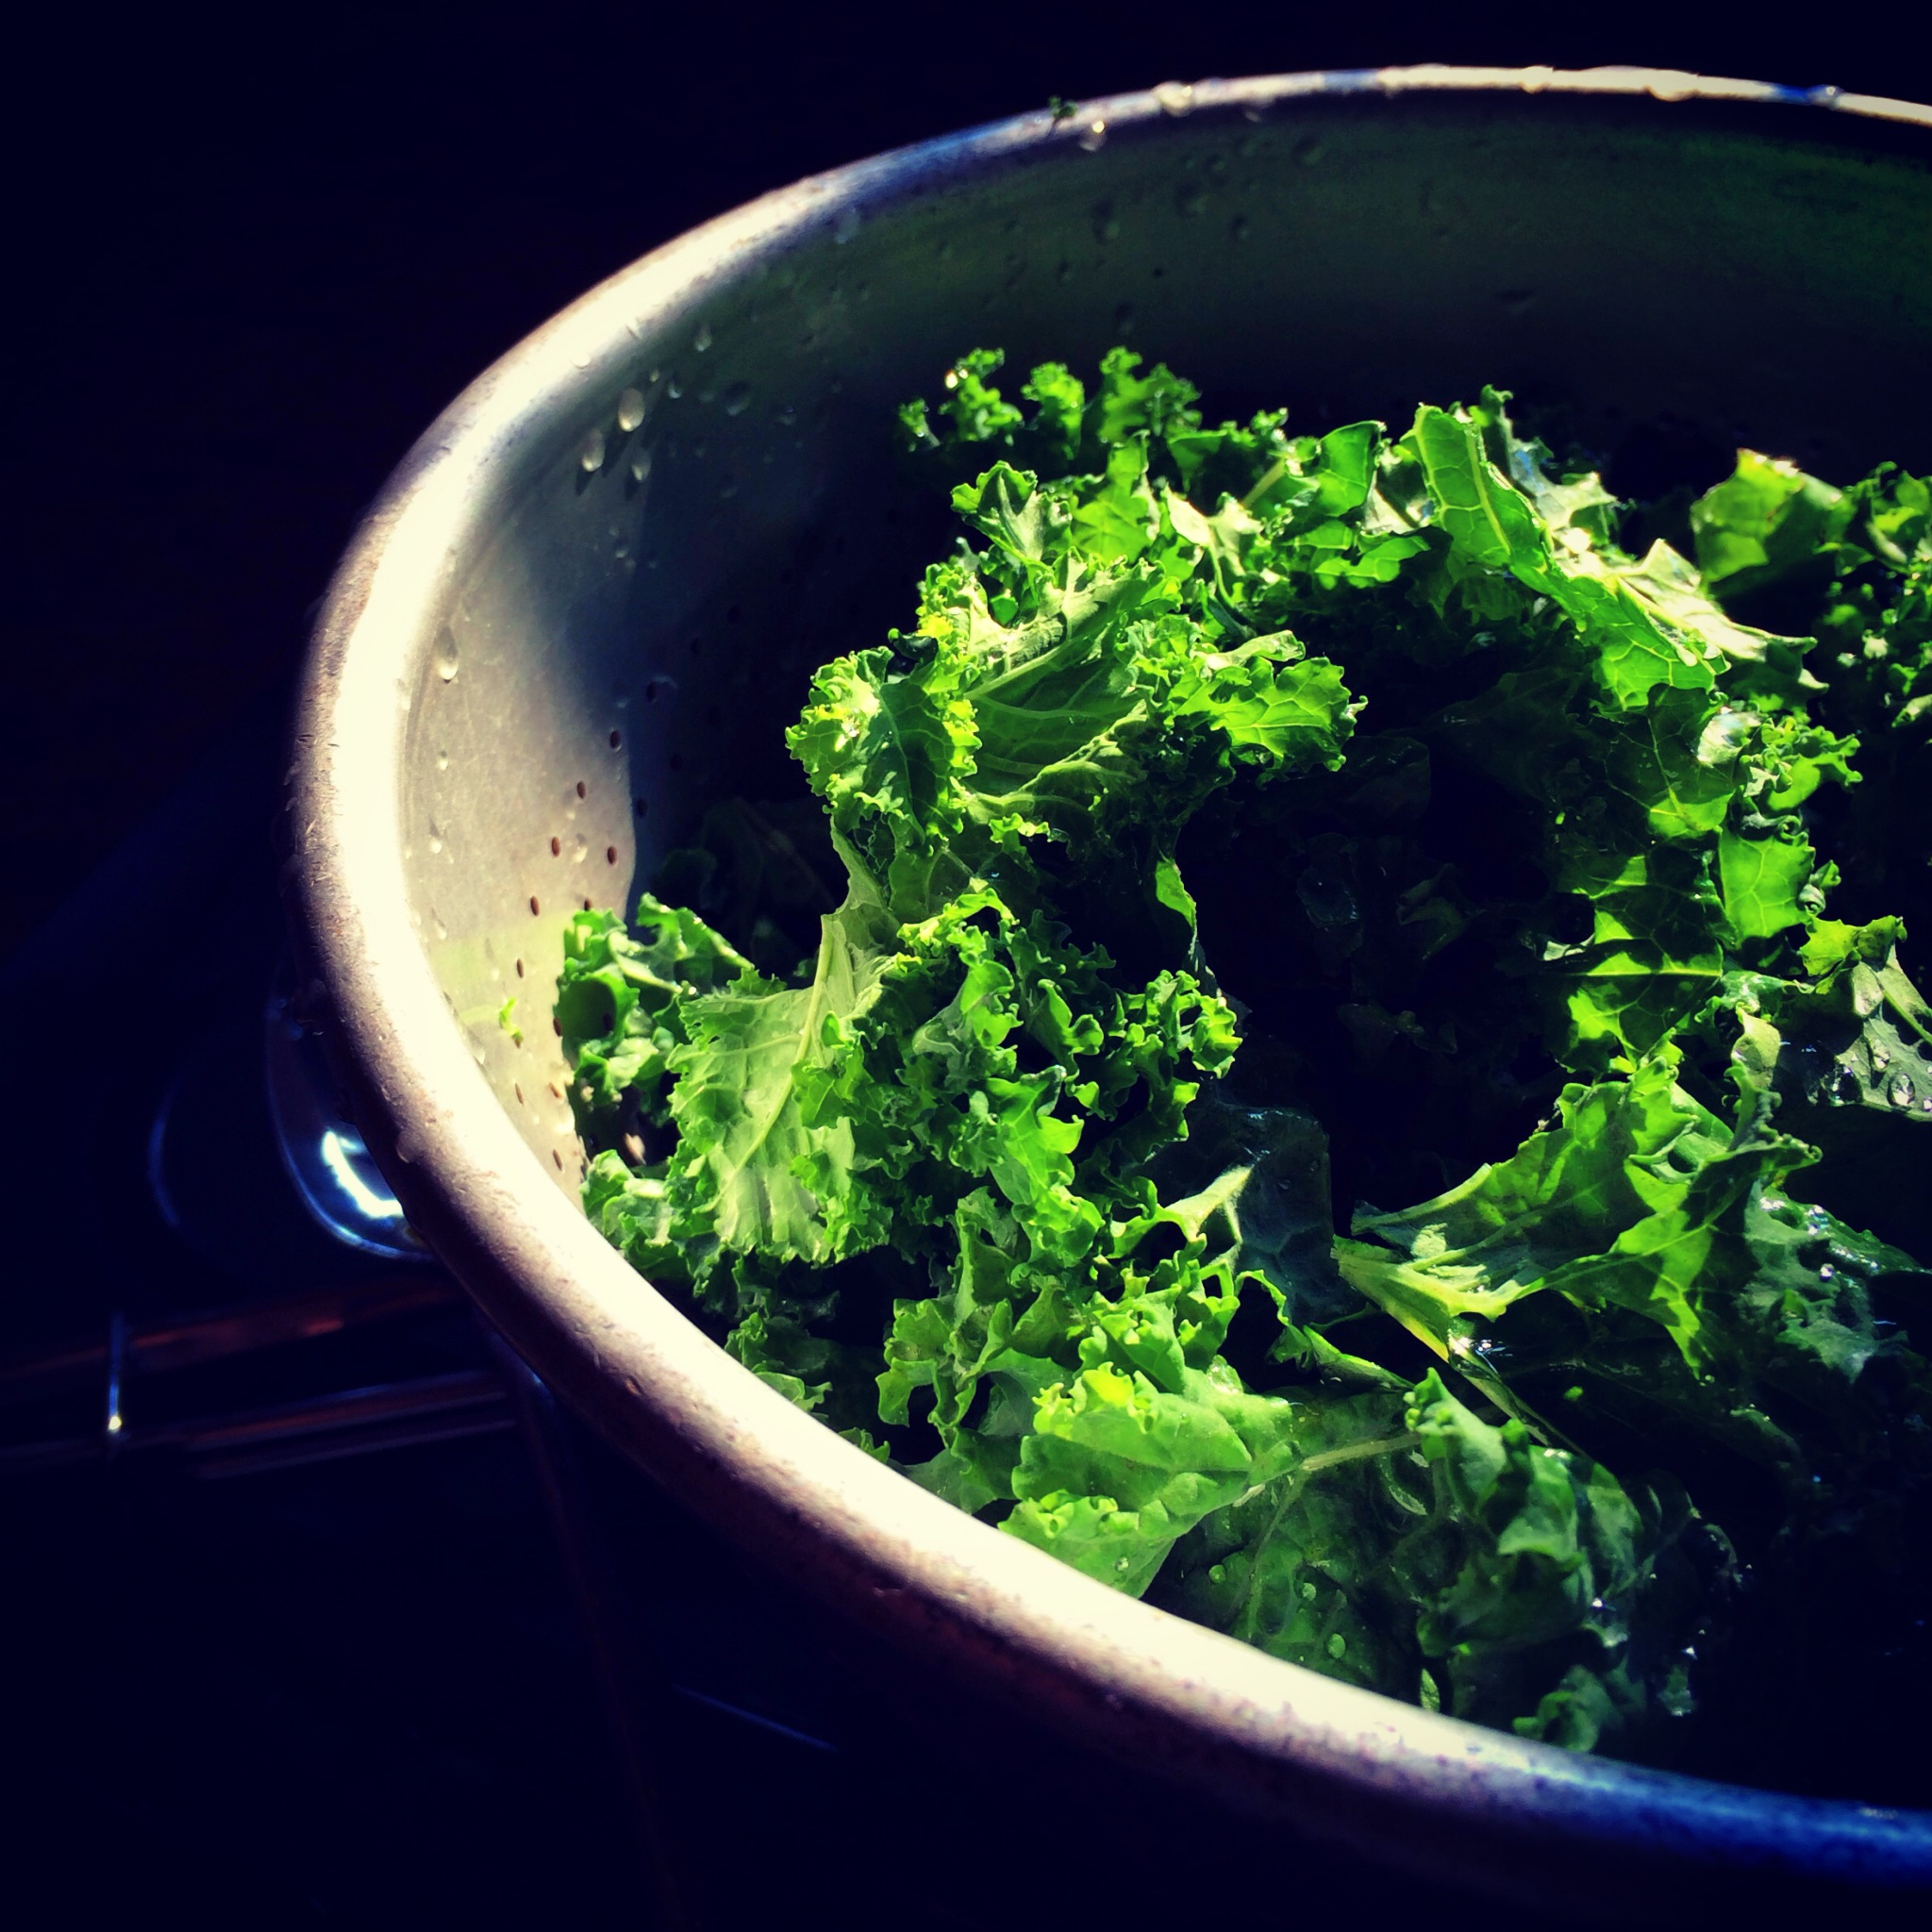 Kale leaves, waiting to be dressed.